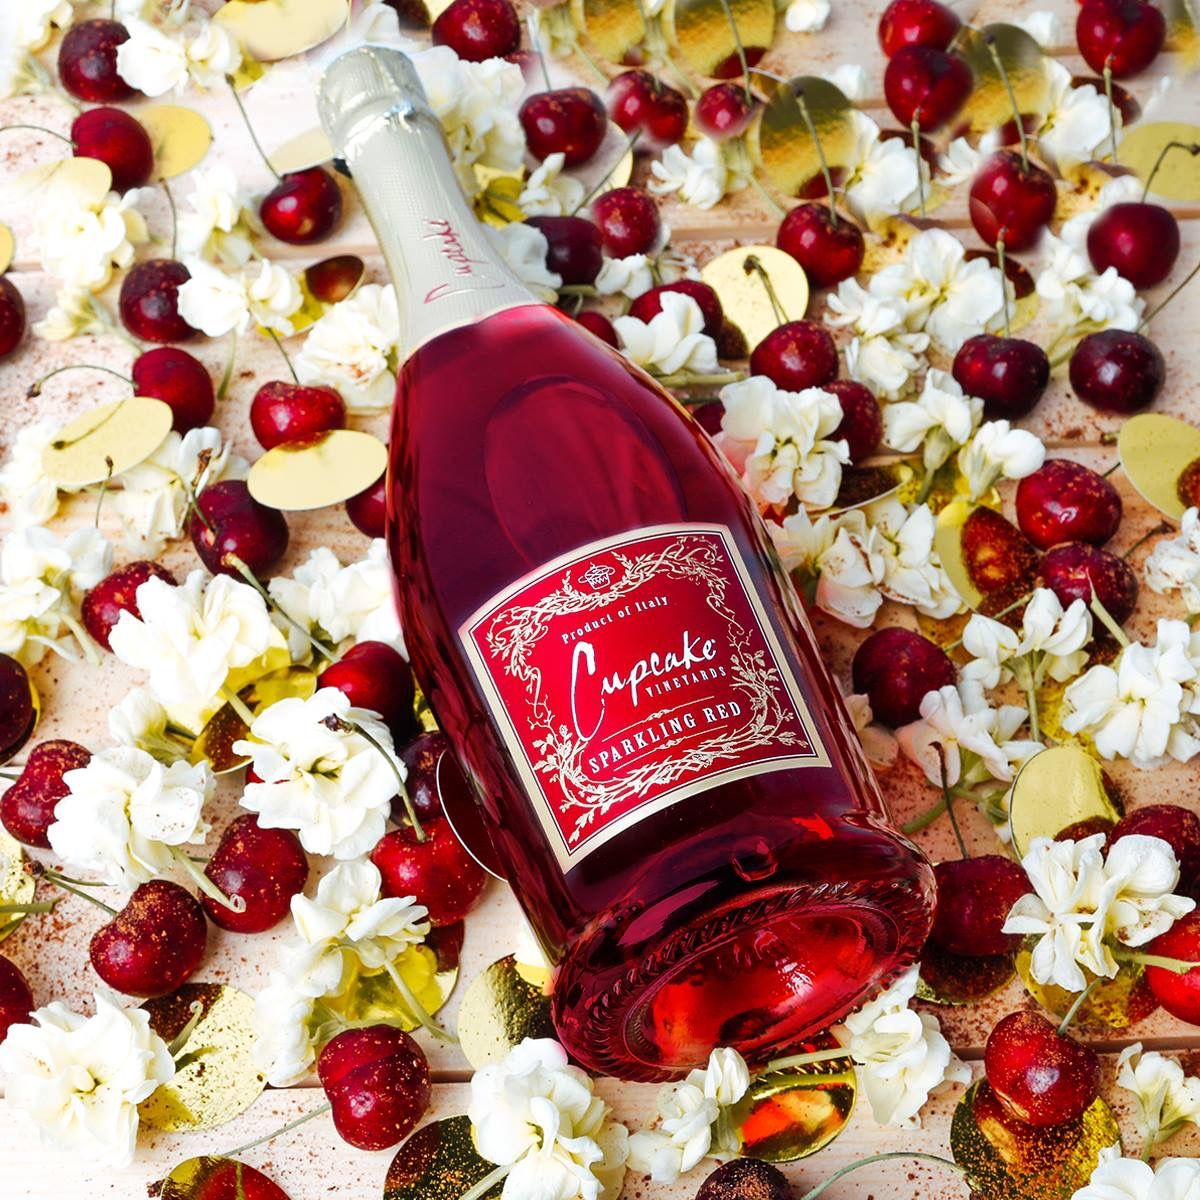 Pin By Becki Swindell On Wps Sparkling Red Wine Glassware Drinking Awesome Wine Labels